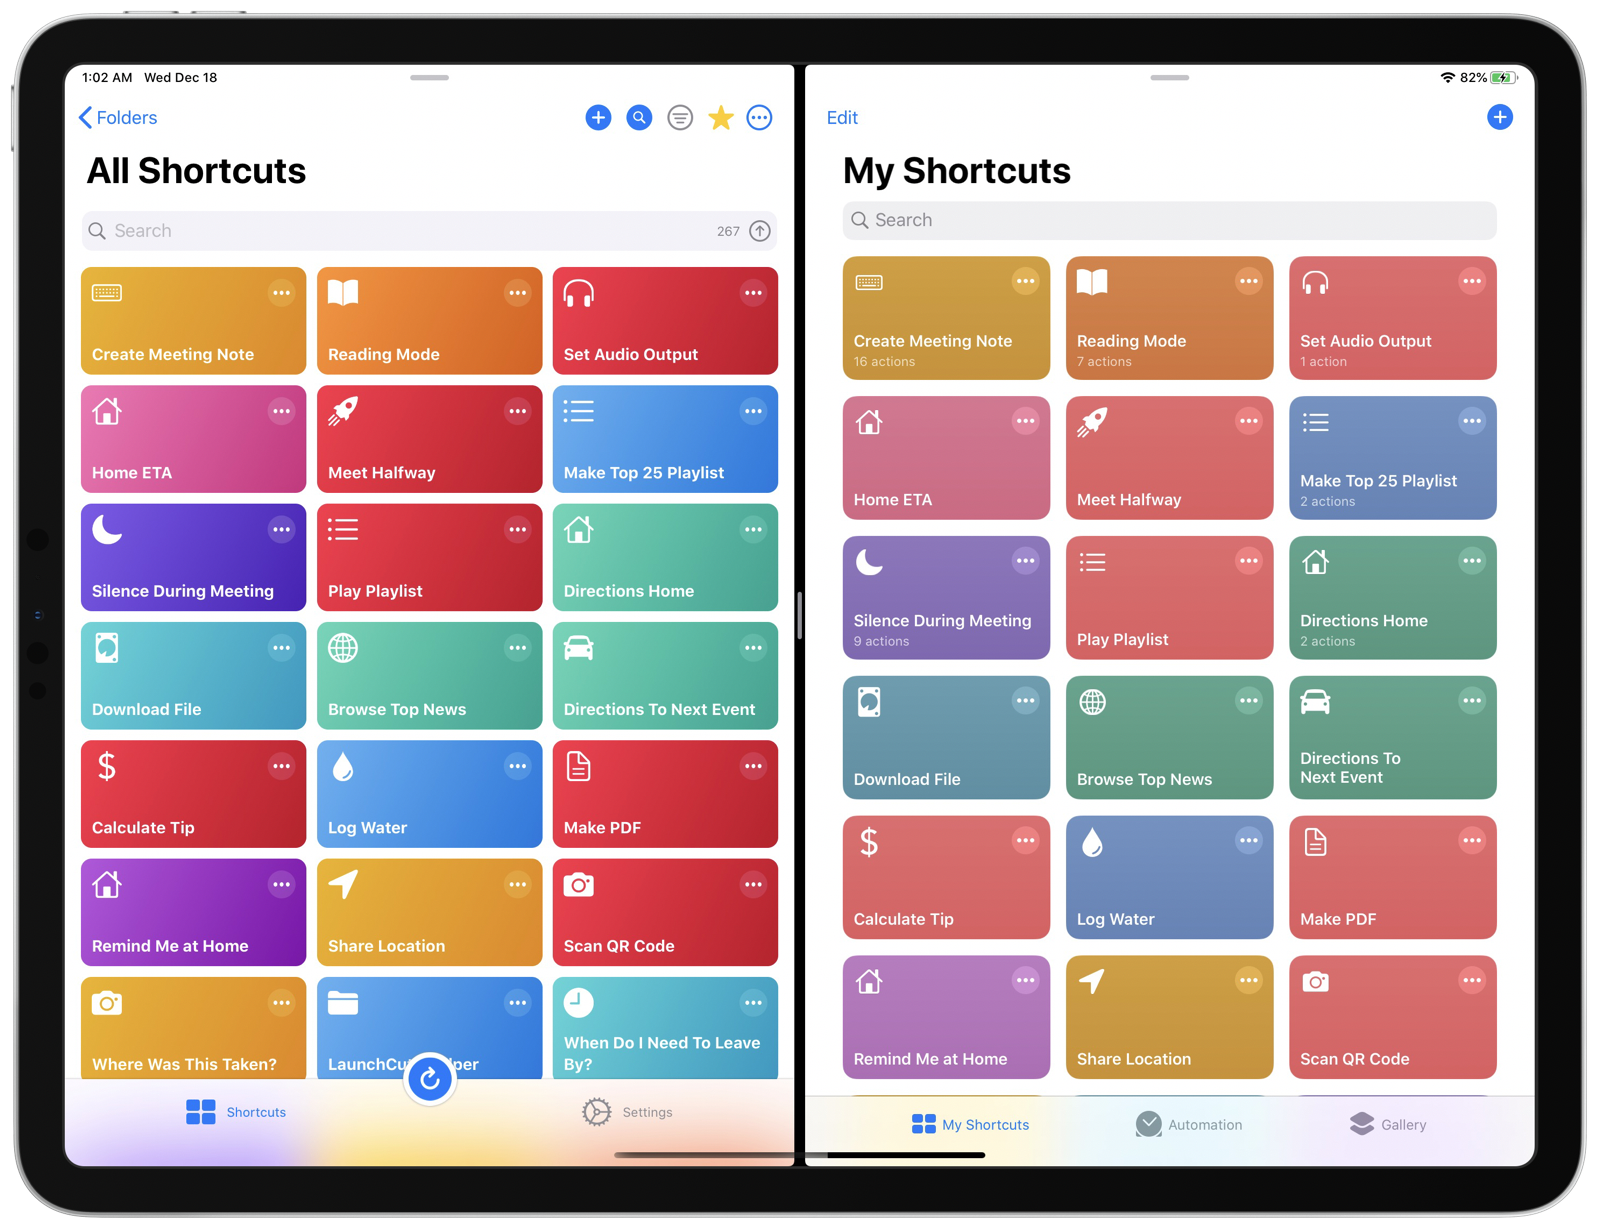 iOS 12-style bright icons